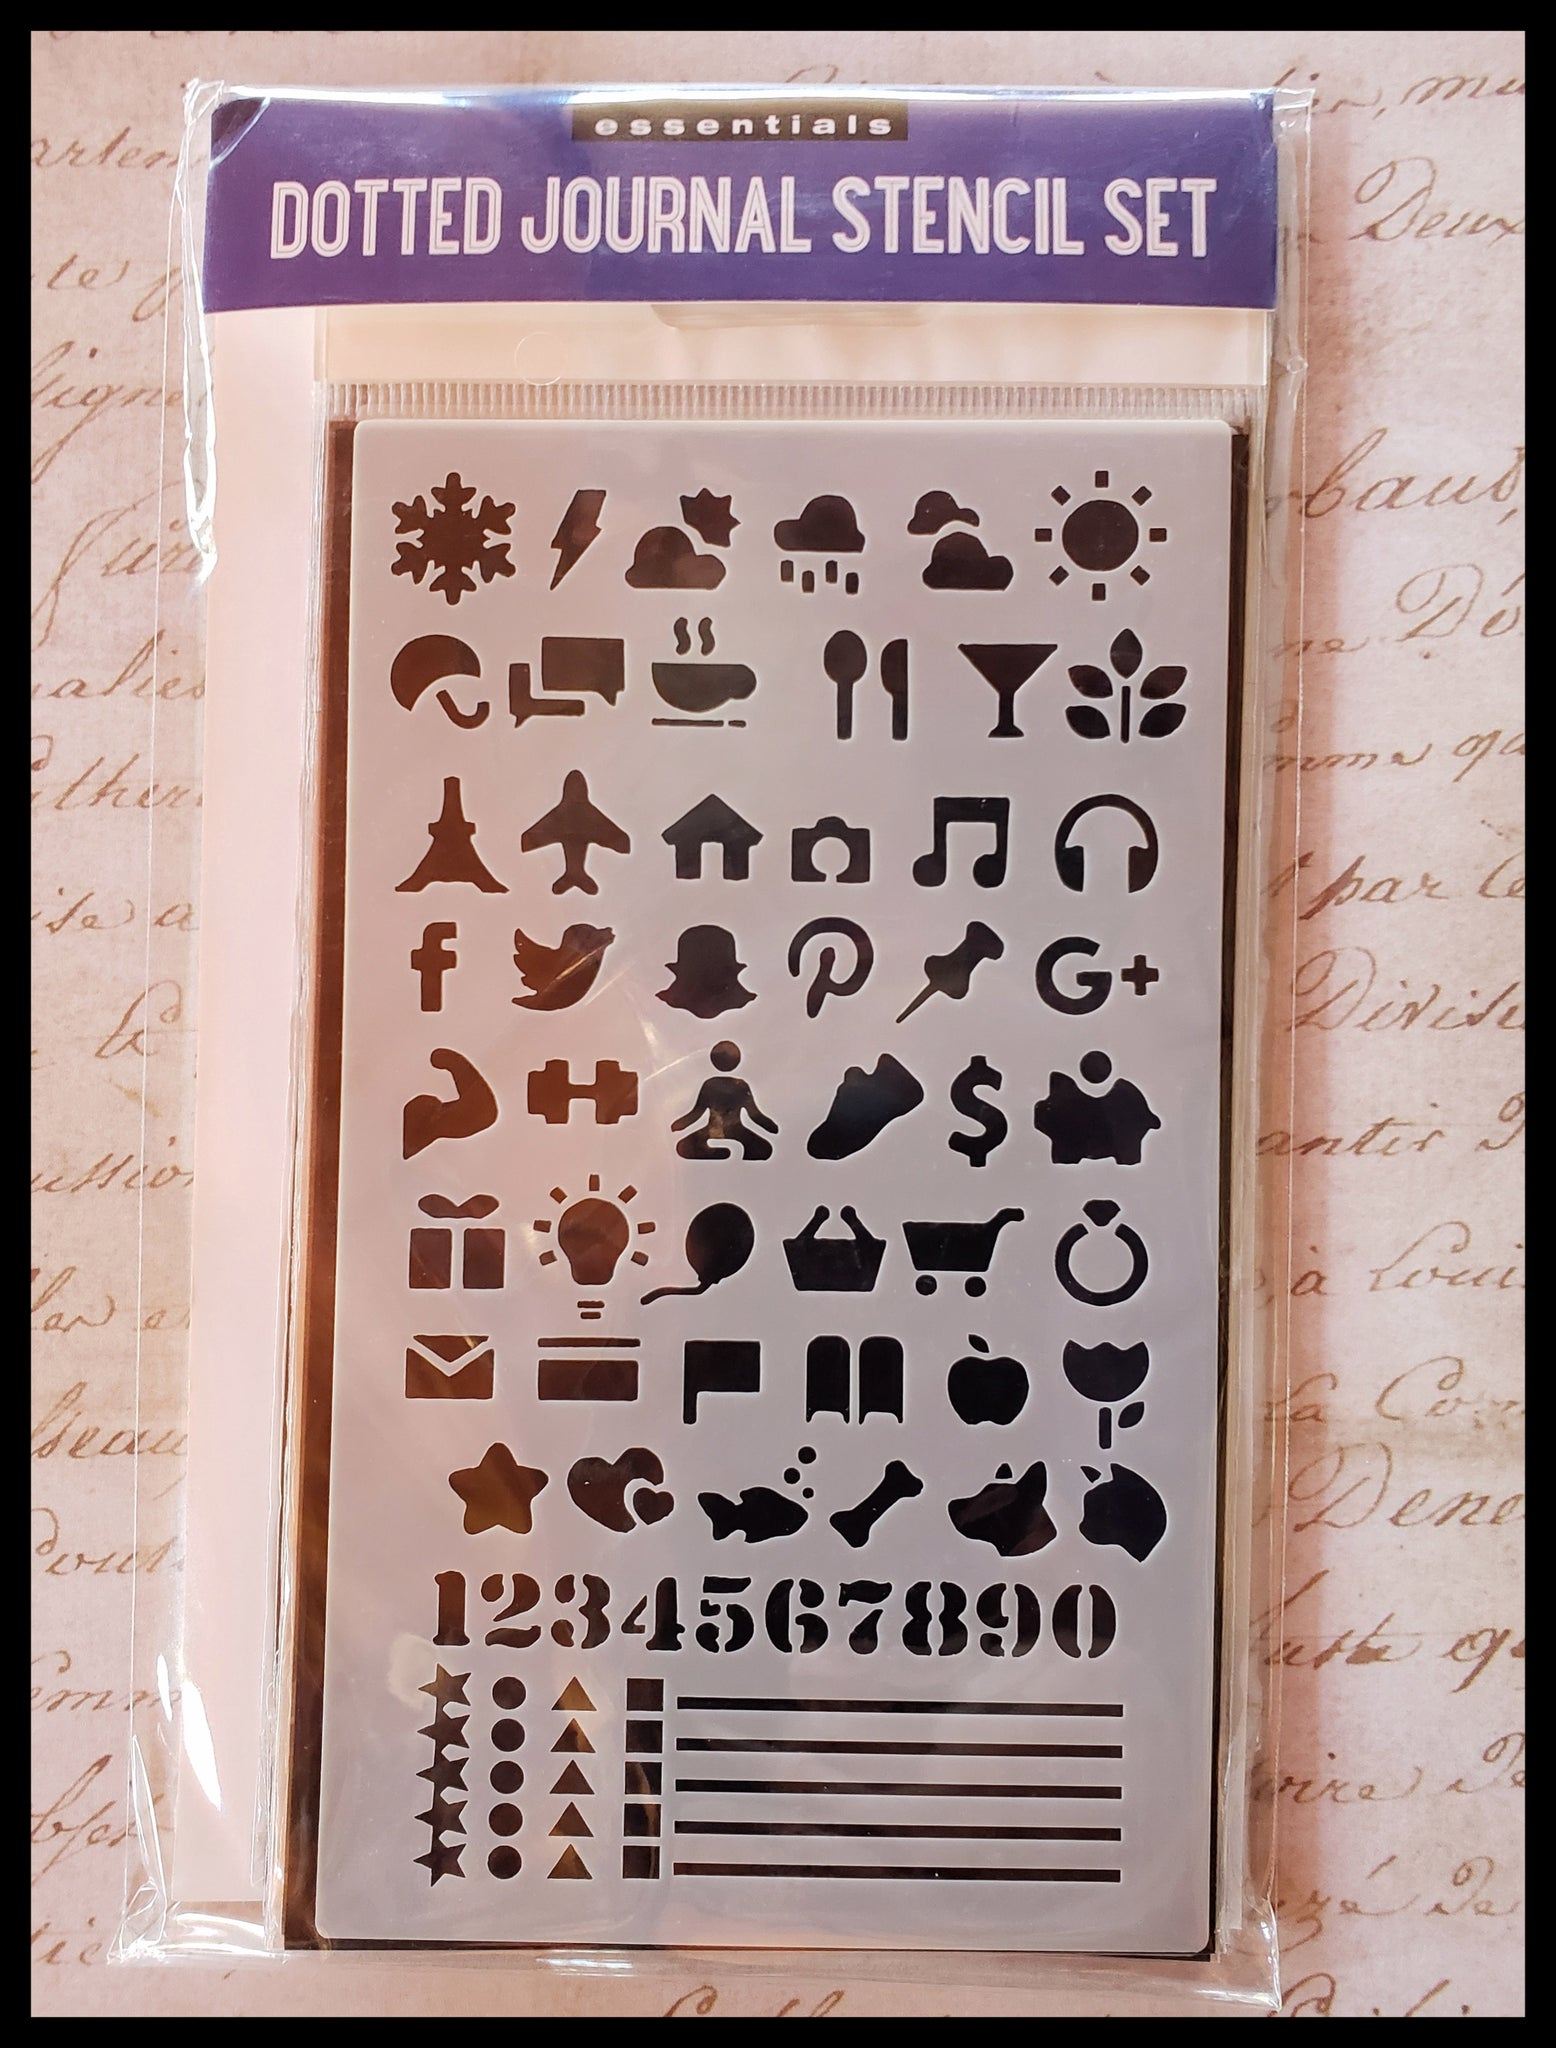 "Journal Stencil Set 12 stencil sheets with over 300 designs   Stencil sheet 4"" x 7""  ADA The Gilded Page Santa Fe New Mexico"